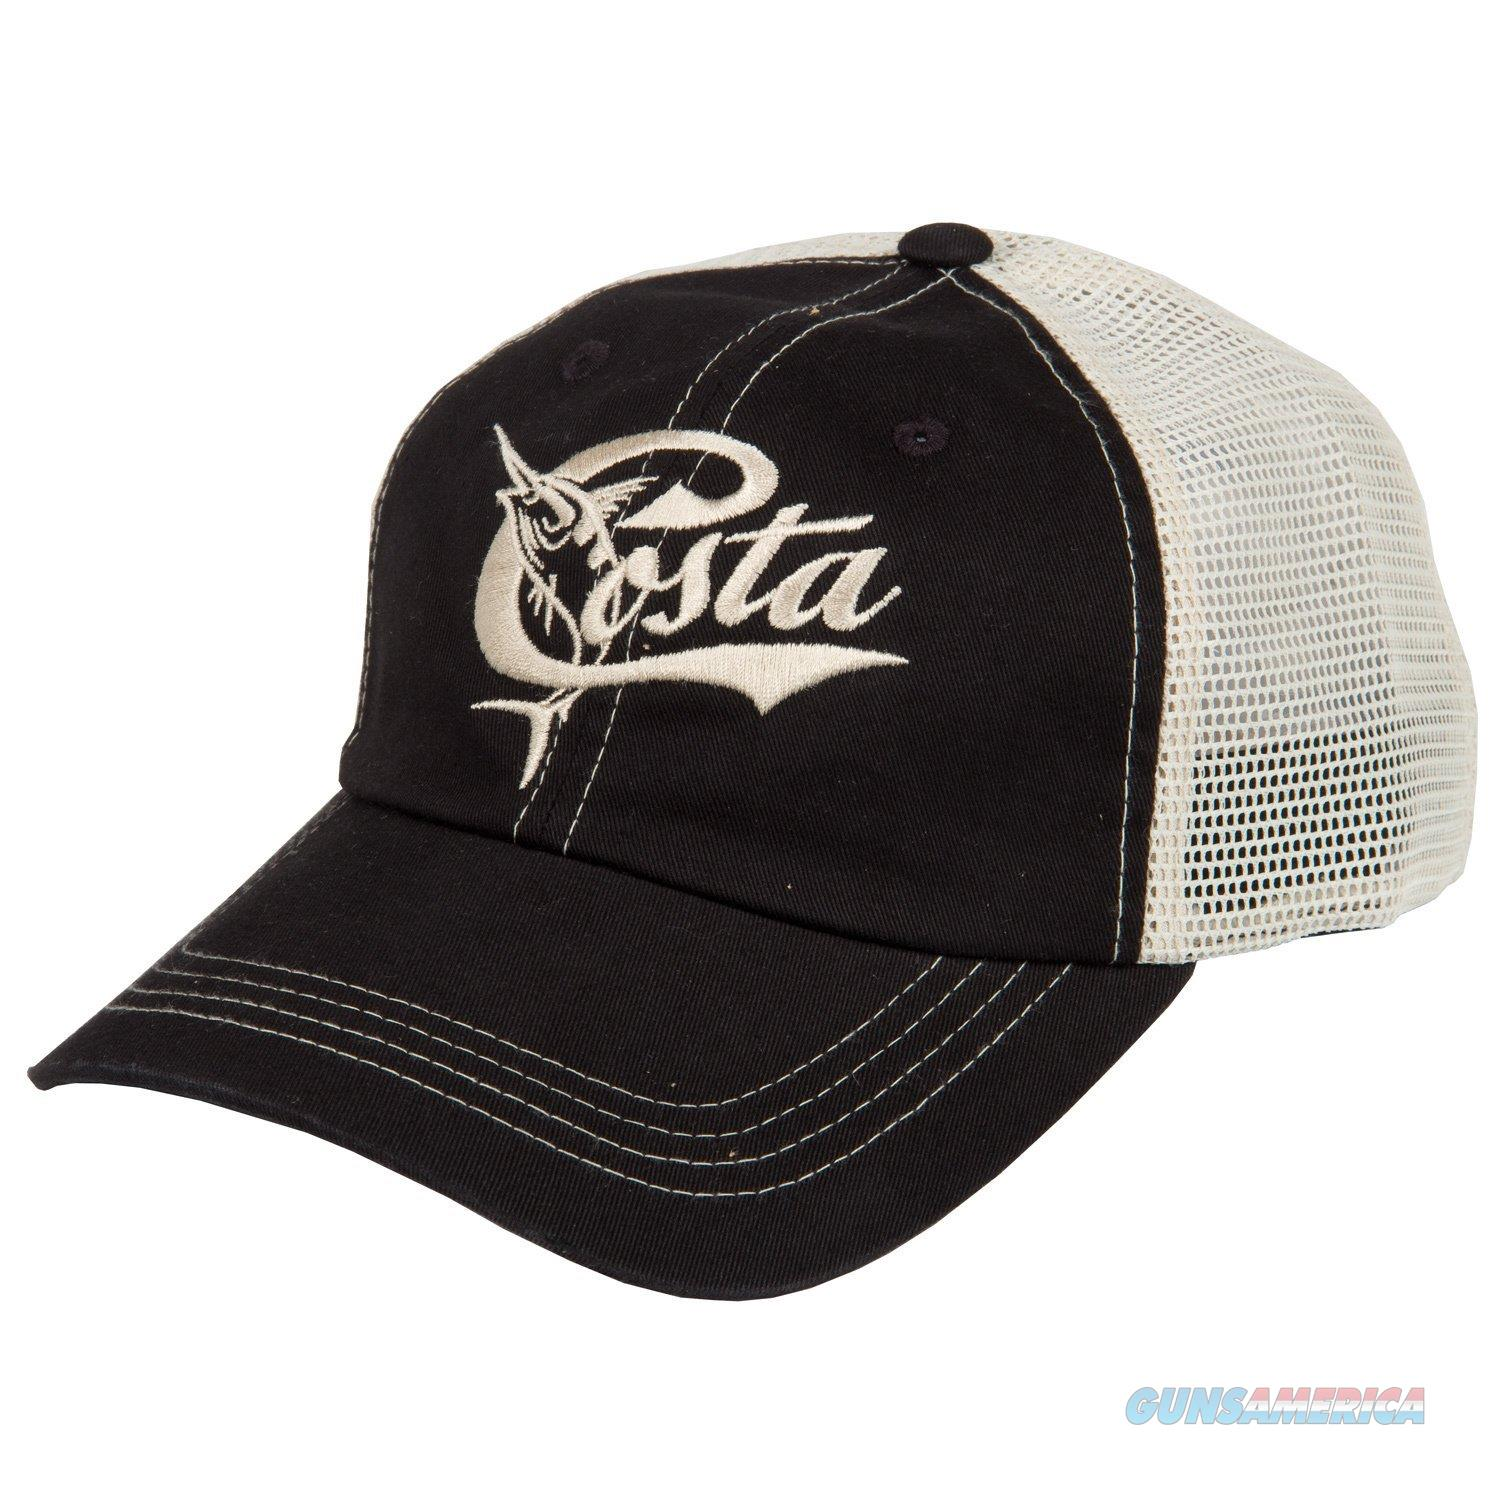 Costa Retro Trucker Ball Cap Black  Non-Guns > Hunting Clothing and Equipment > Clothing > Hats